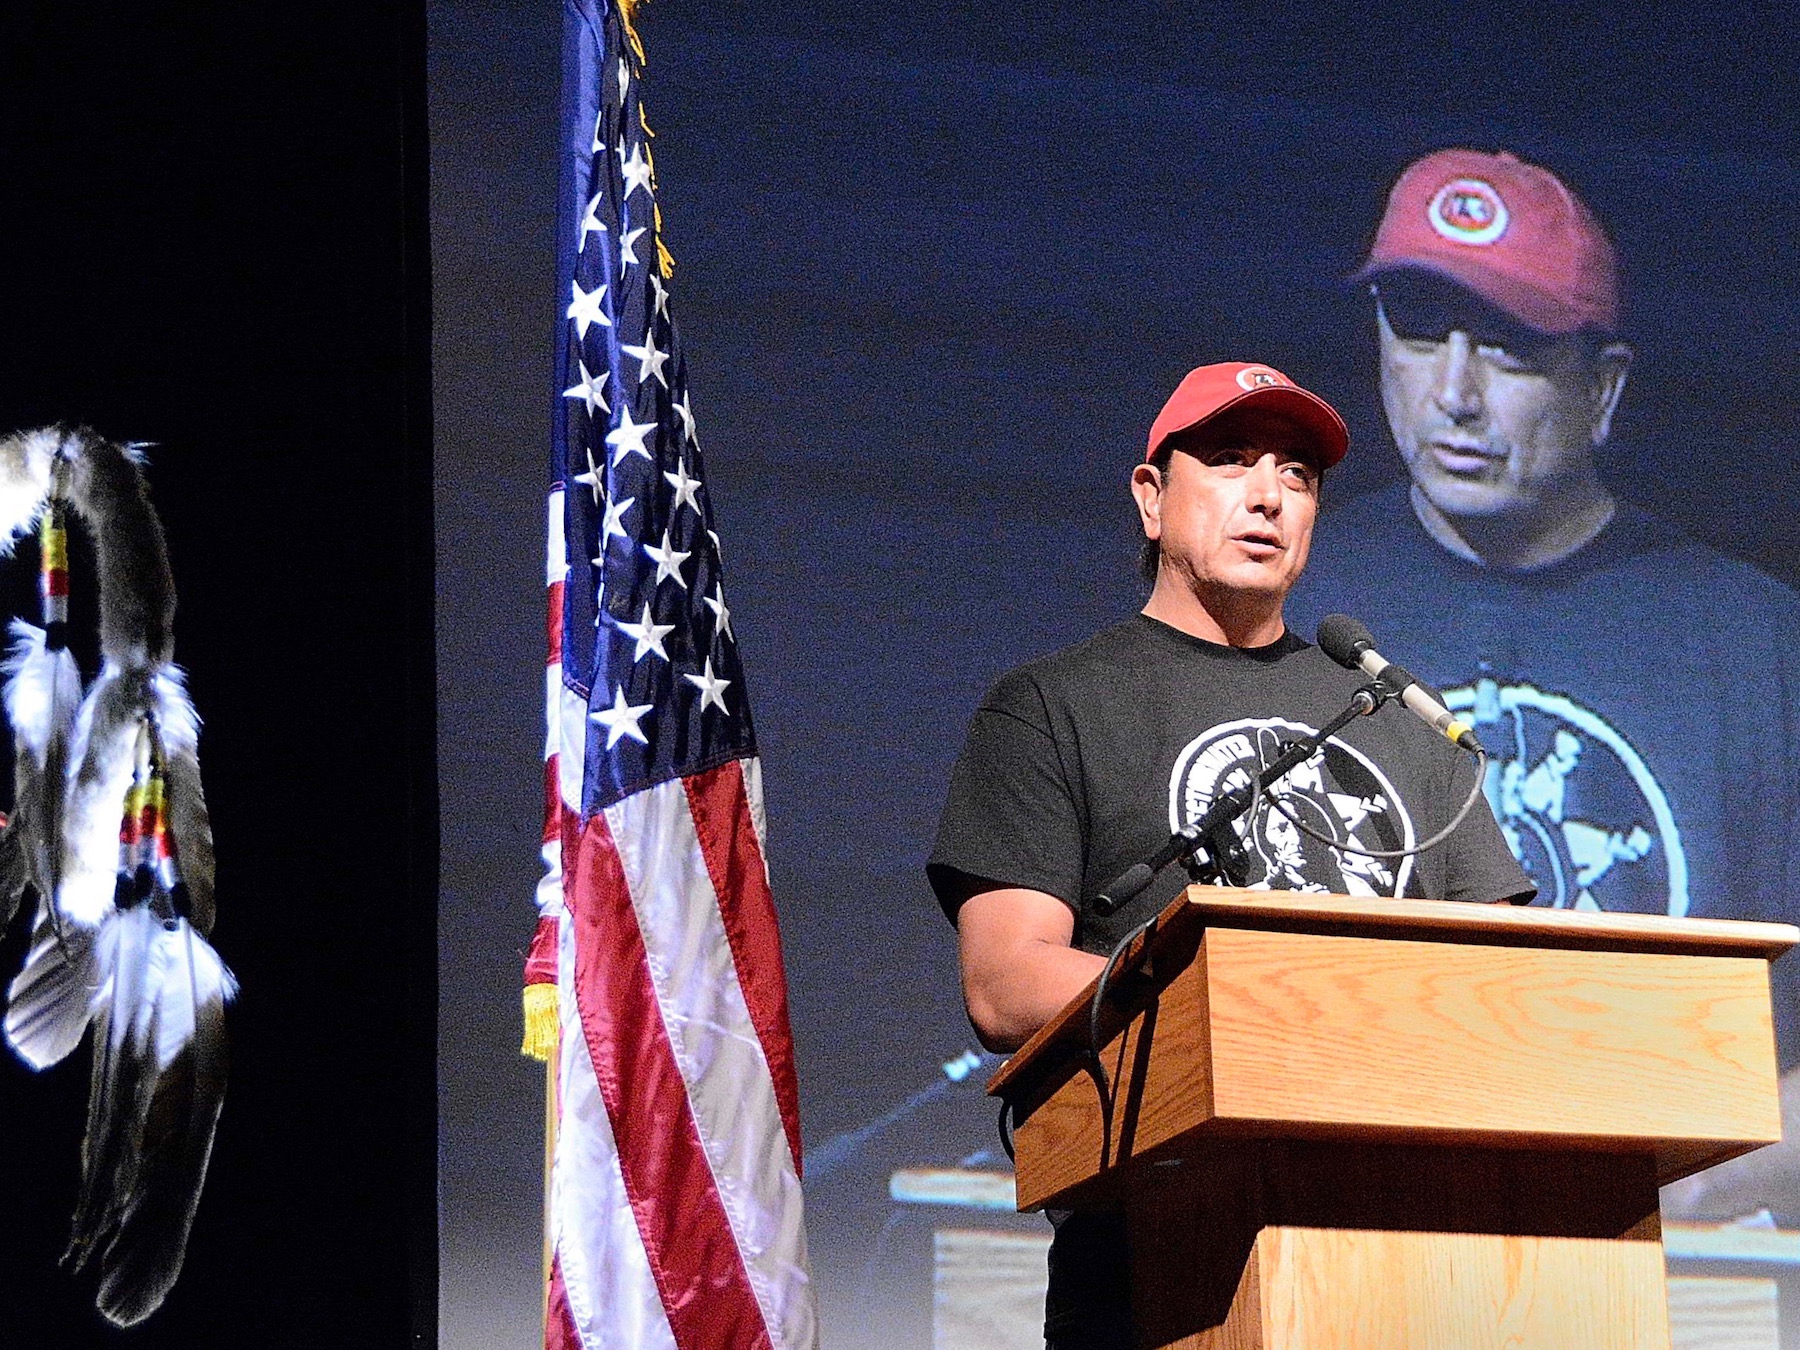 #NoDAPL movement takes center stage at summit in North Dakota